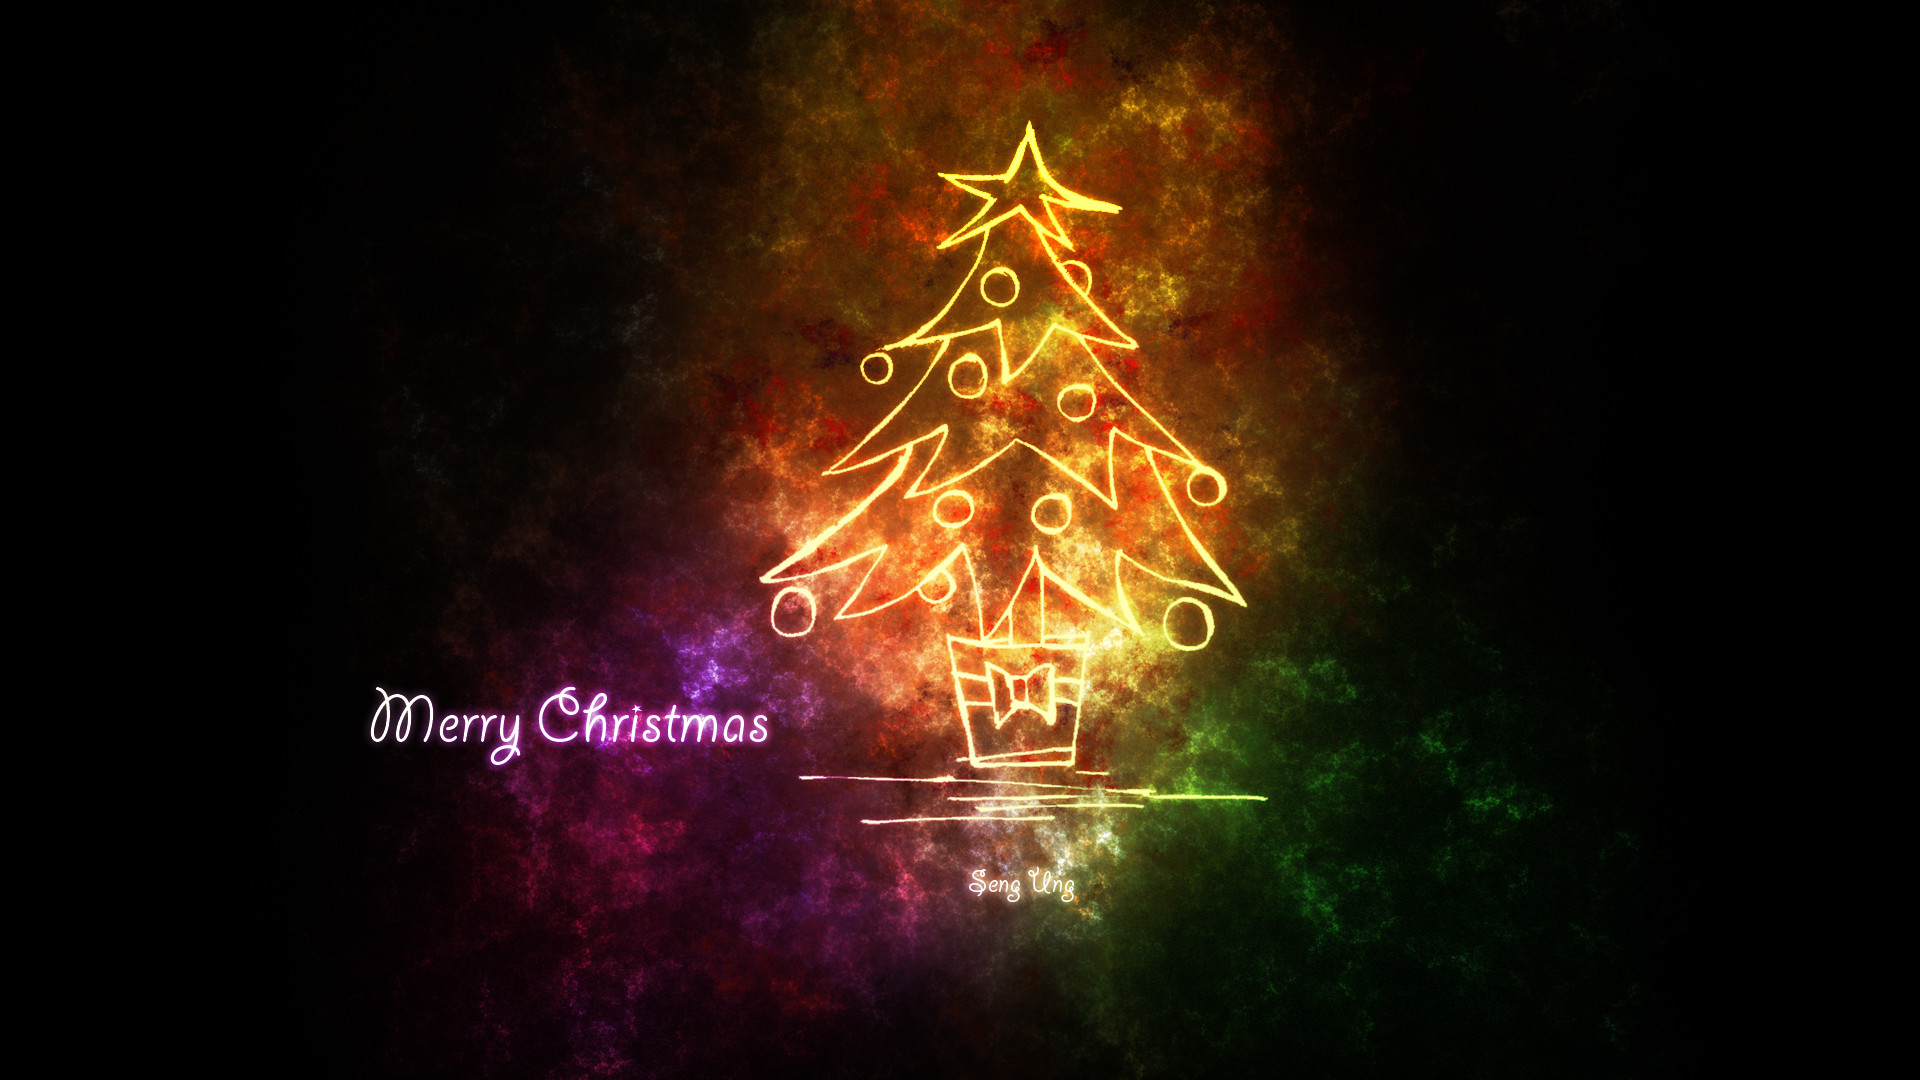 Christmas HD Wallpaper...